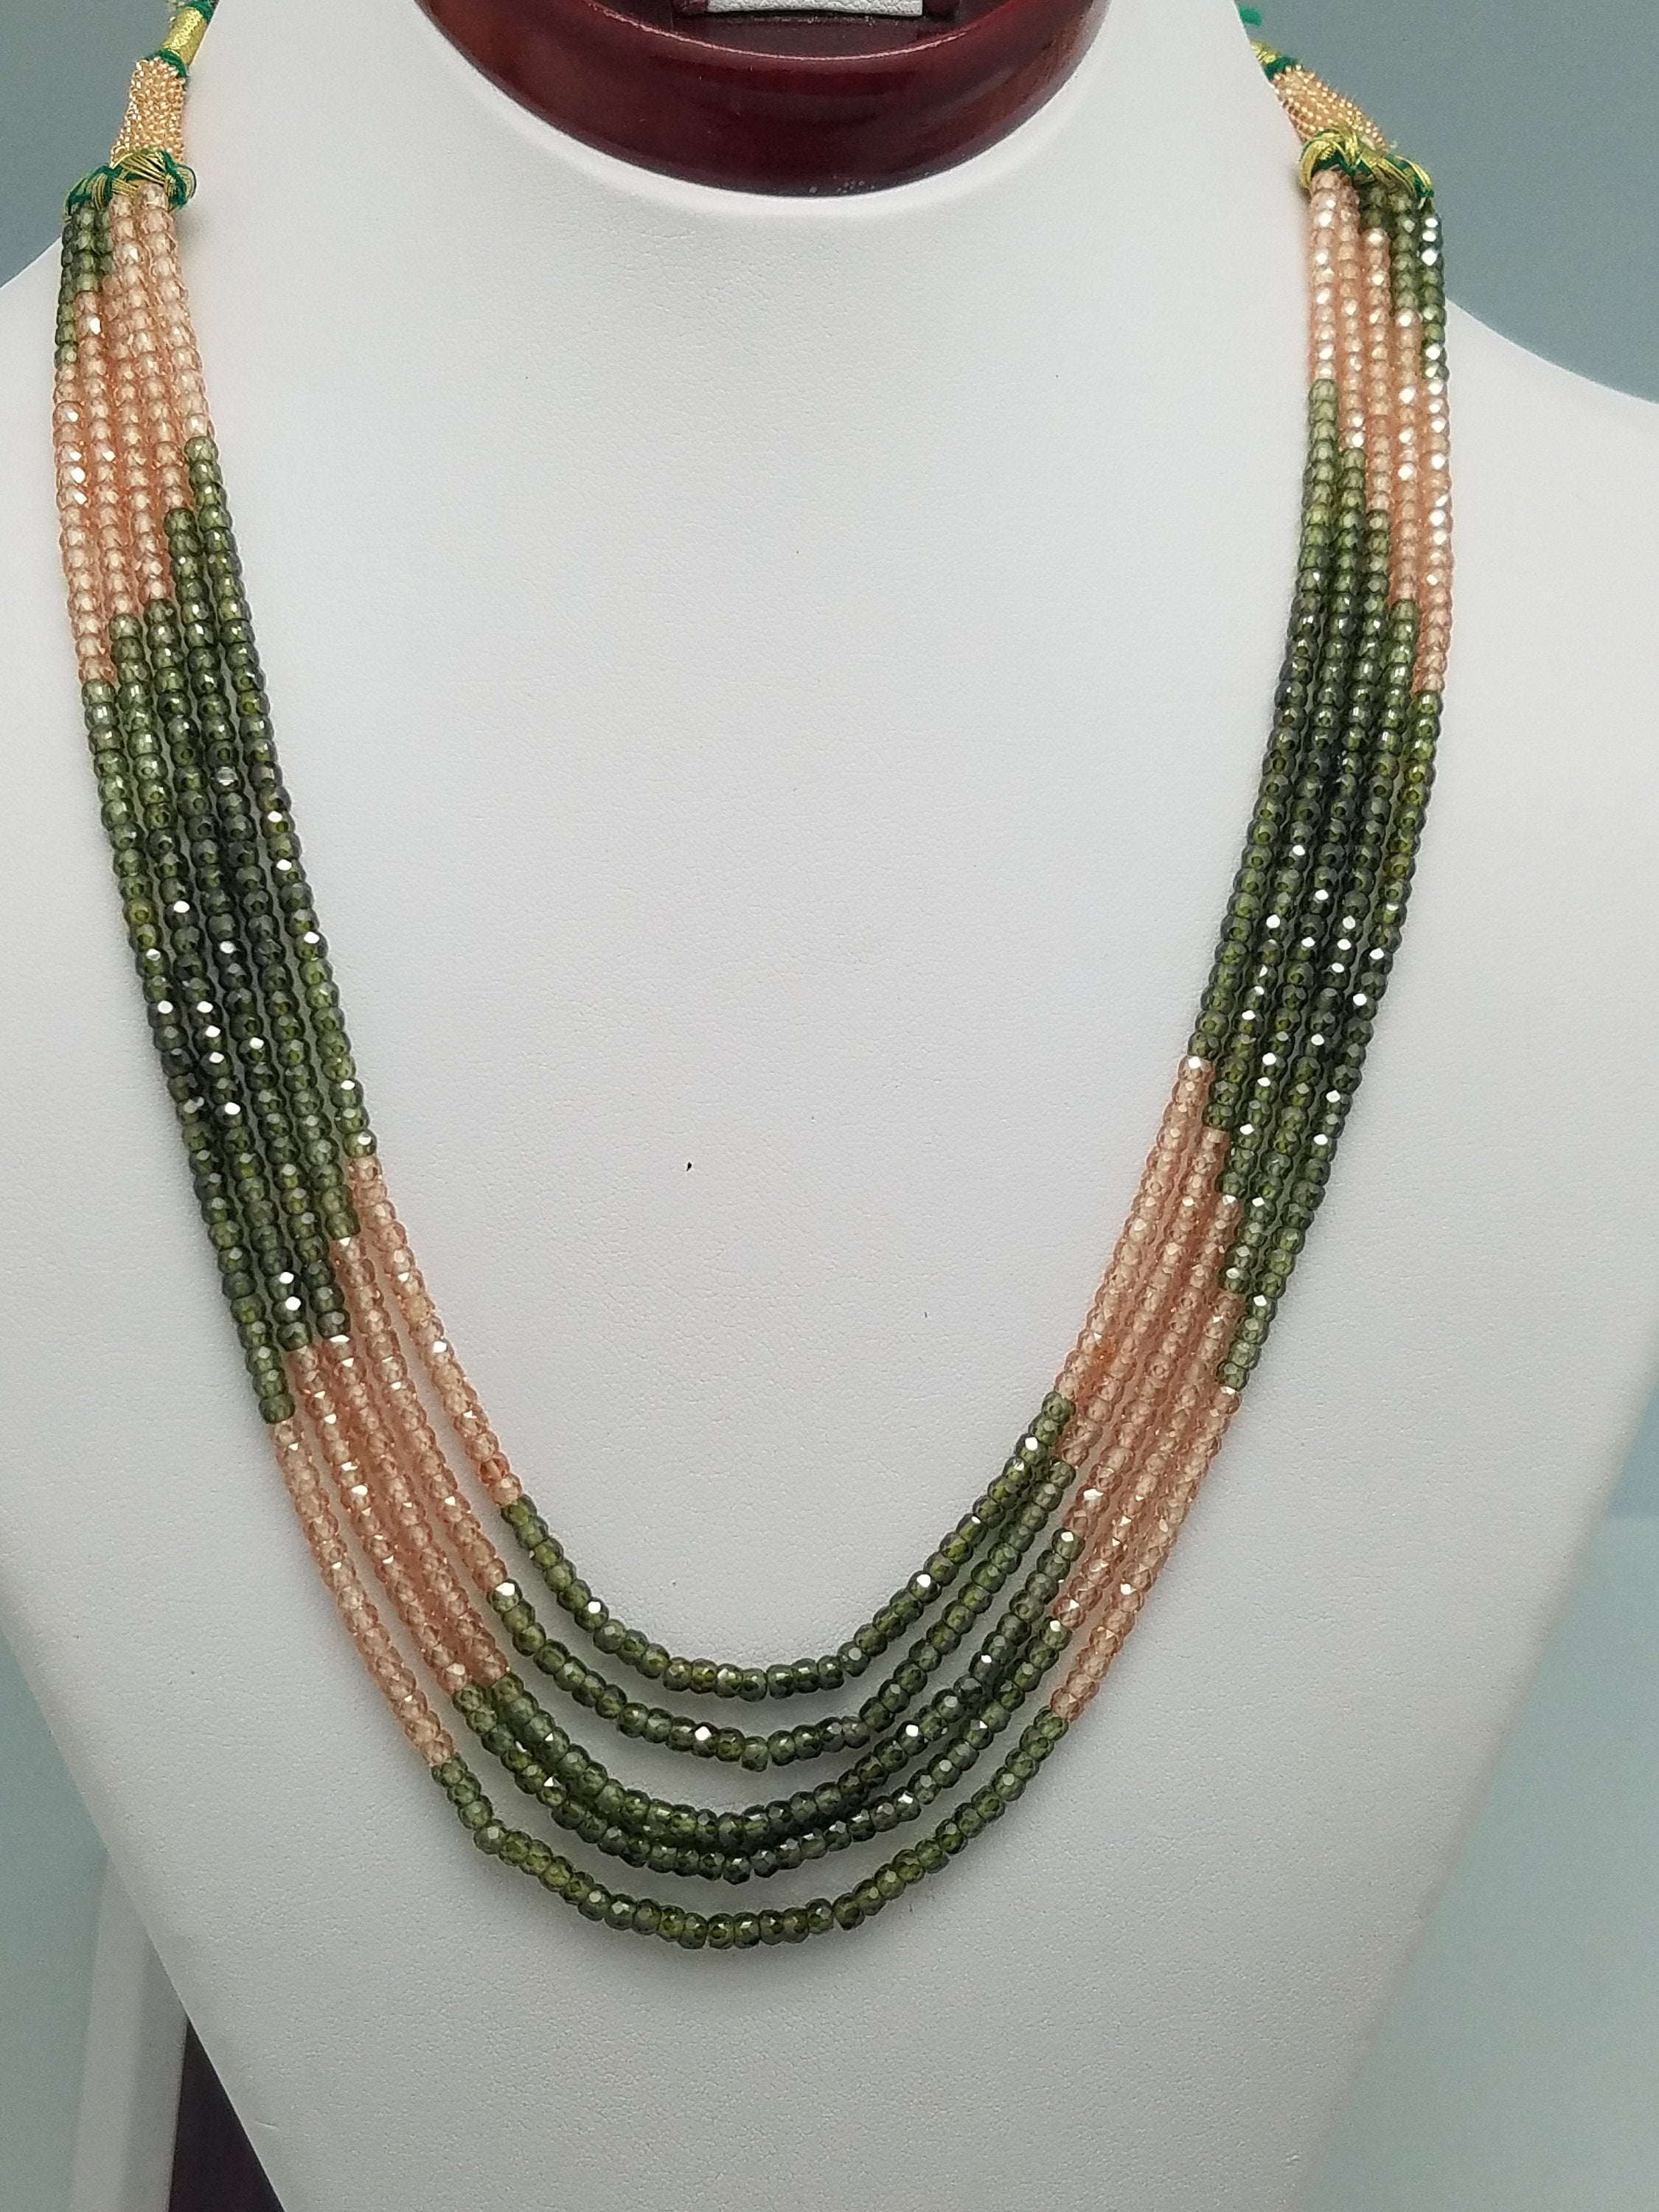 3mm Brown & Green CZ Faceted Beaded Necklace - 5 Strands, Gemstone Necklace